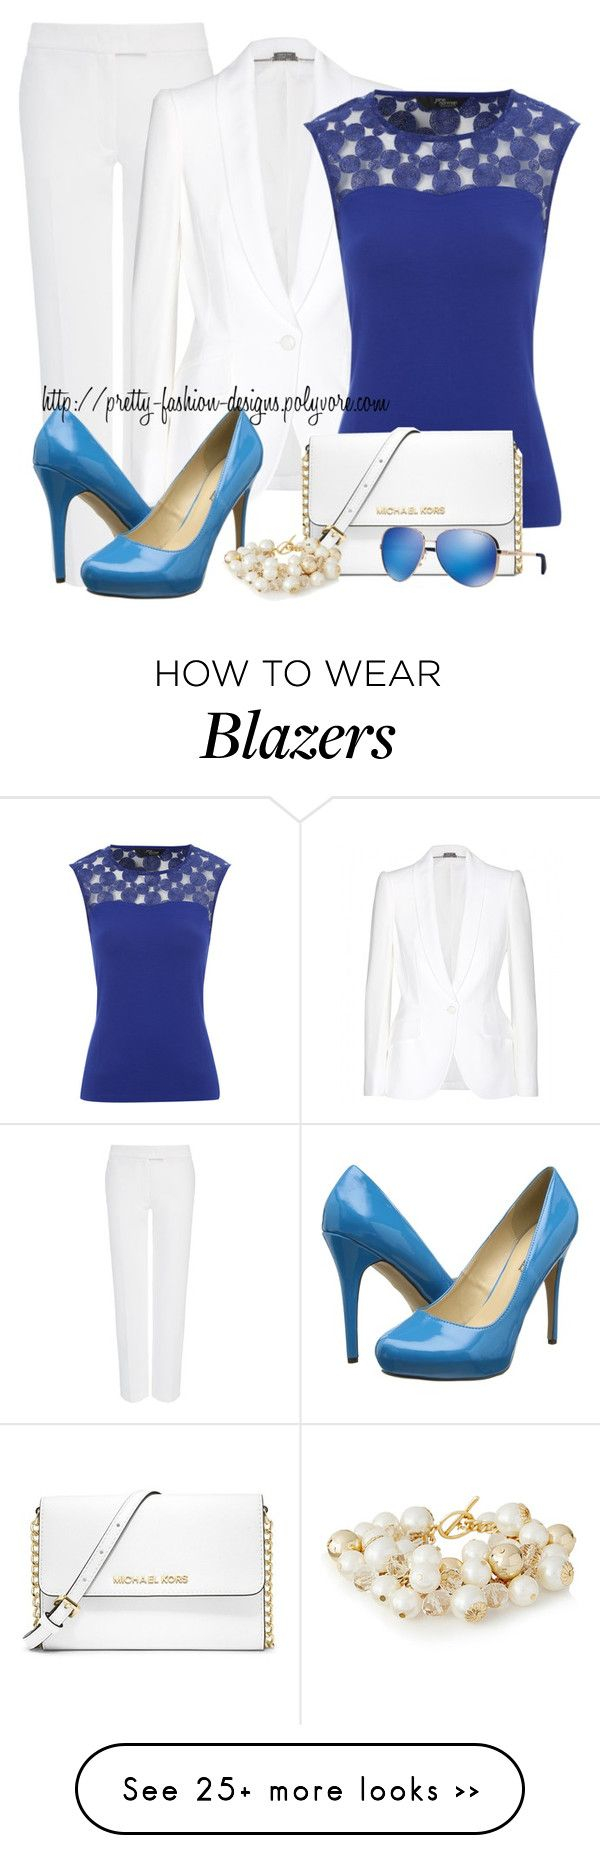 """~  Matching Blazer & Pants  ~"" by pretty-fashion-designs on Polyvore featuring Joseph, Alexander McQueen, Michael Antonio, MICHAEL Michael Kors, The Limited and Michael Kors"